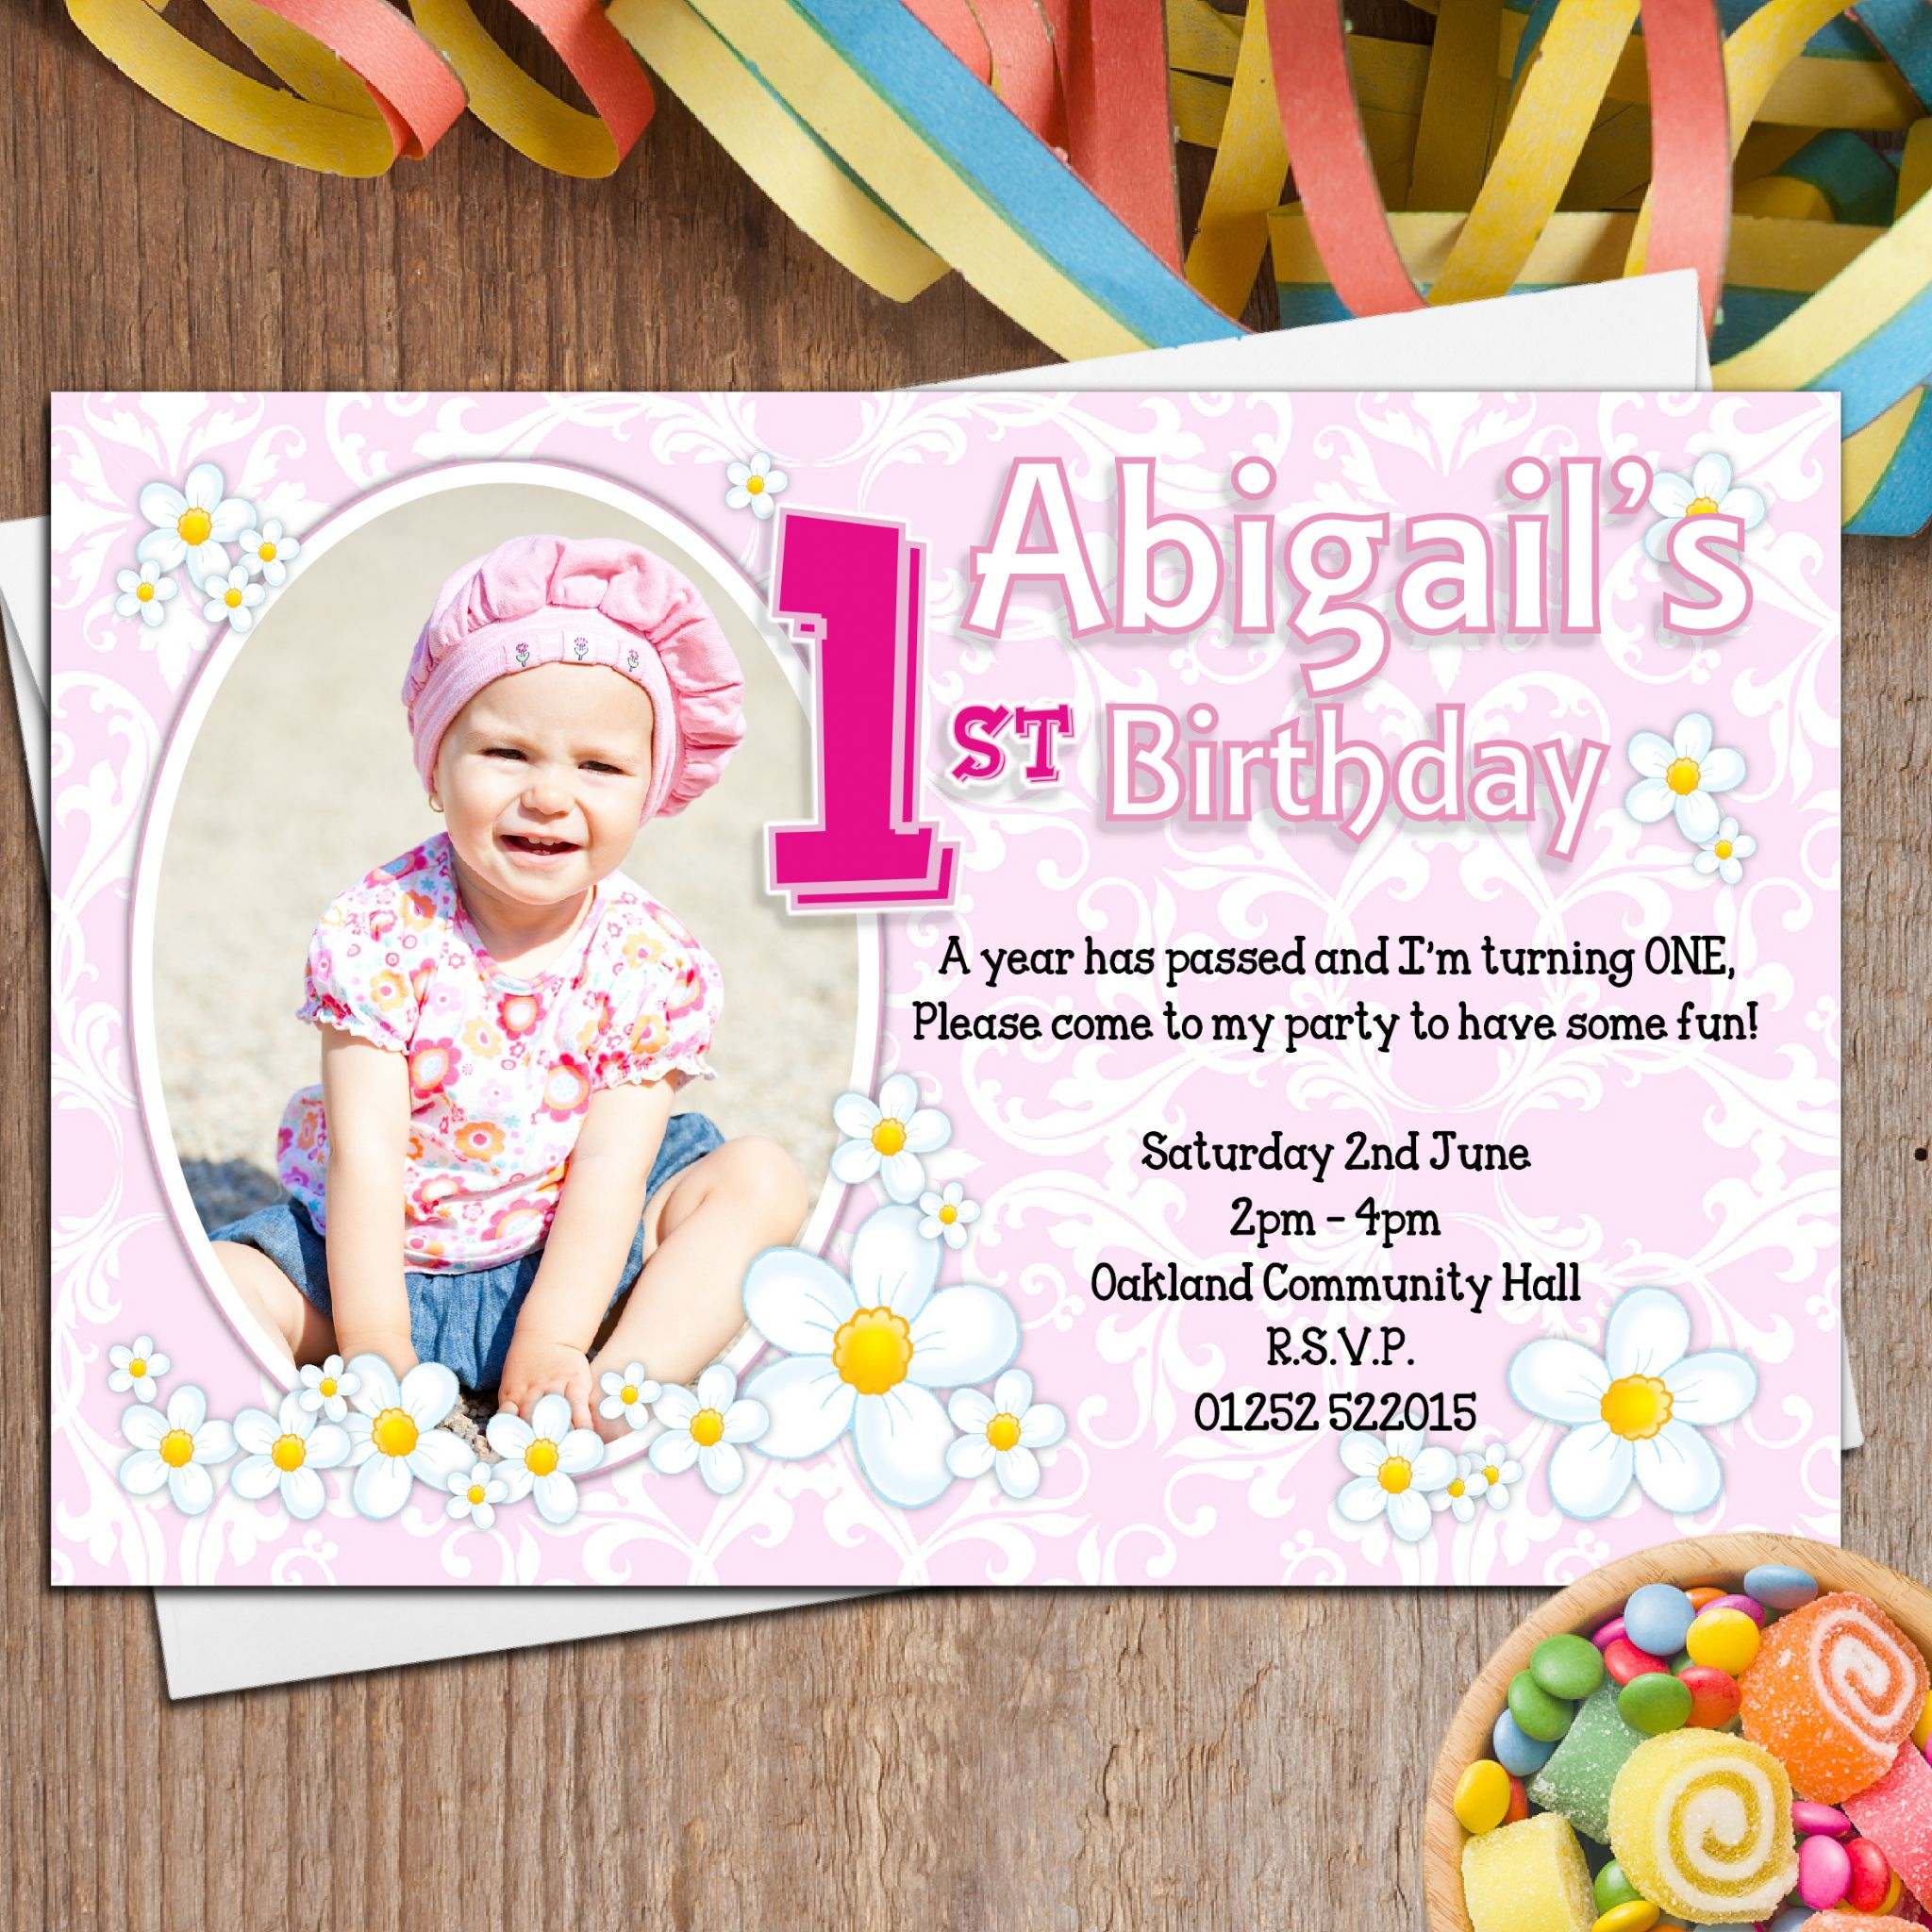 cheap birthday invitation cards ; 10-personalised-girls-first-1st-birthday-party-photo-invitations-n27-11350-p